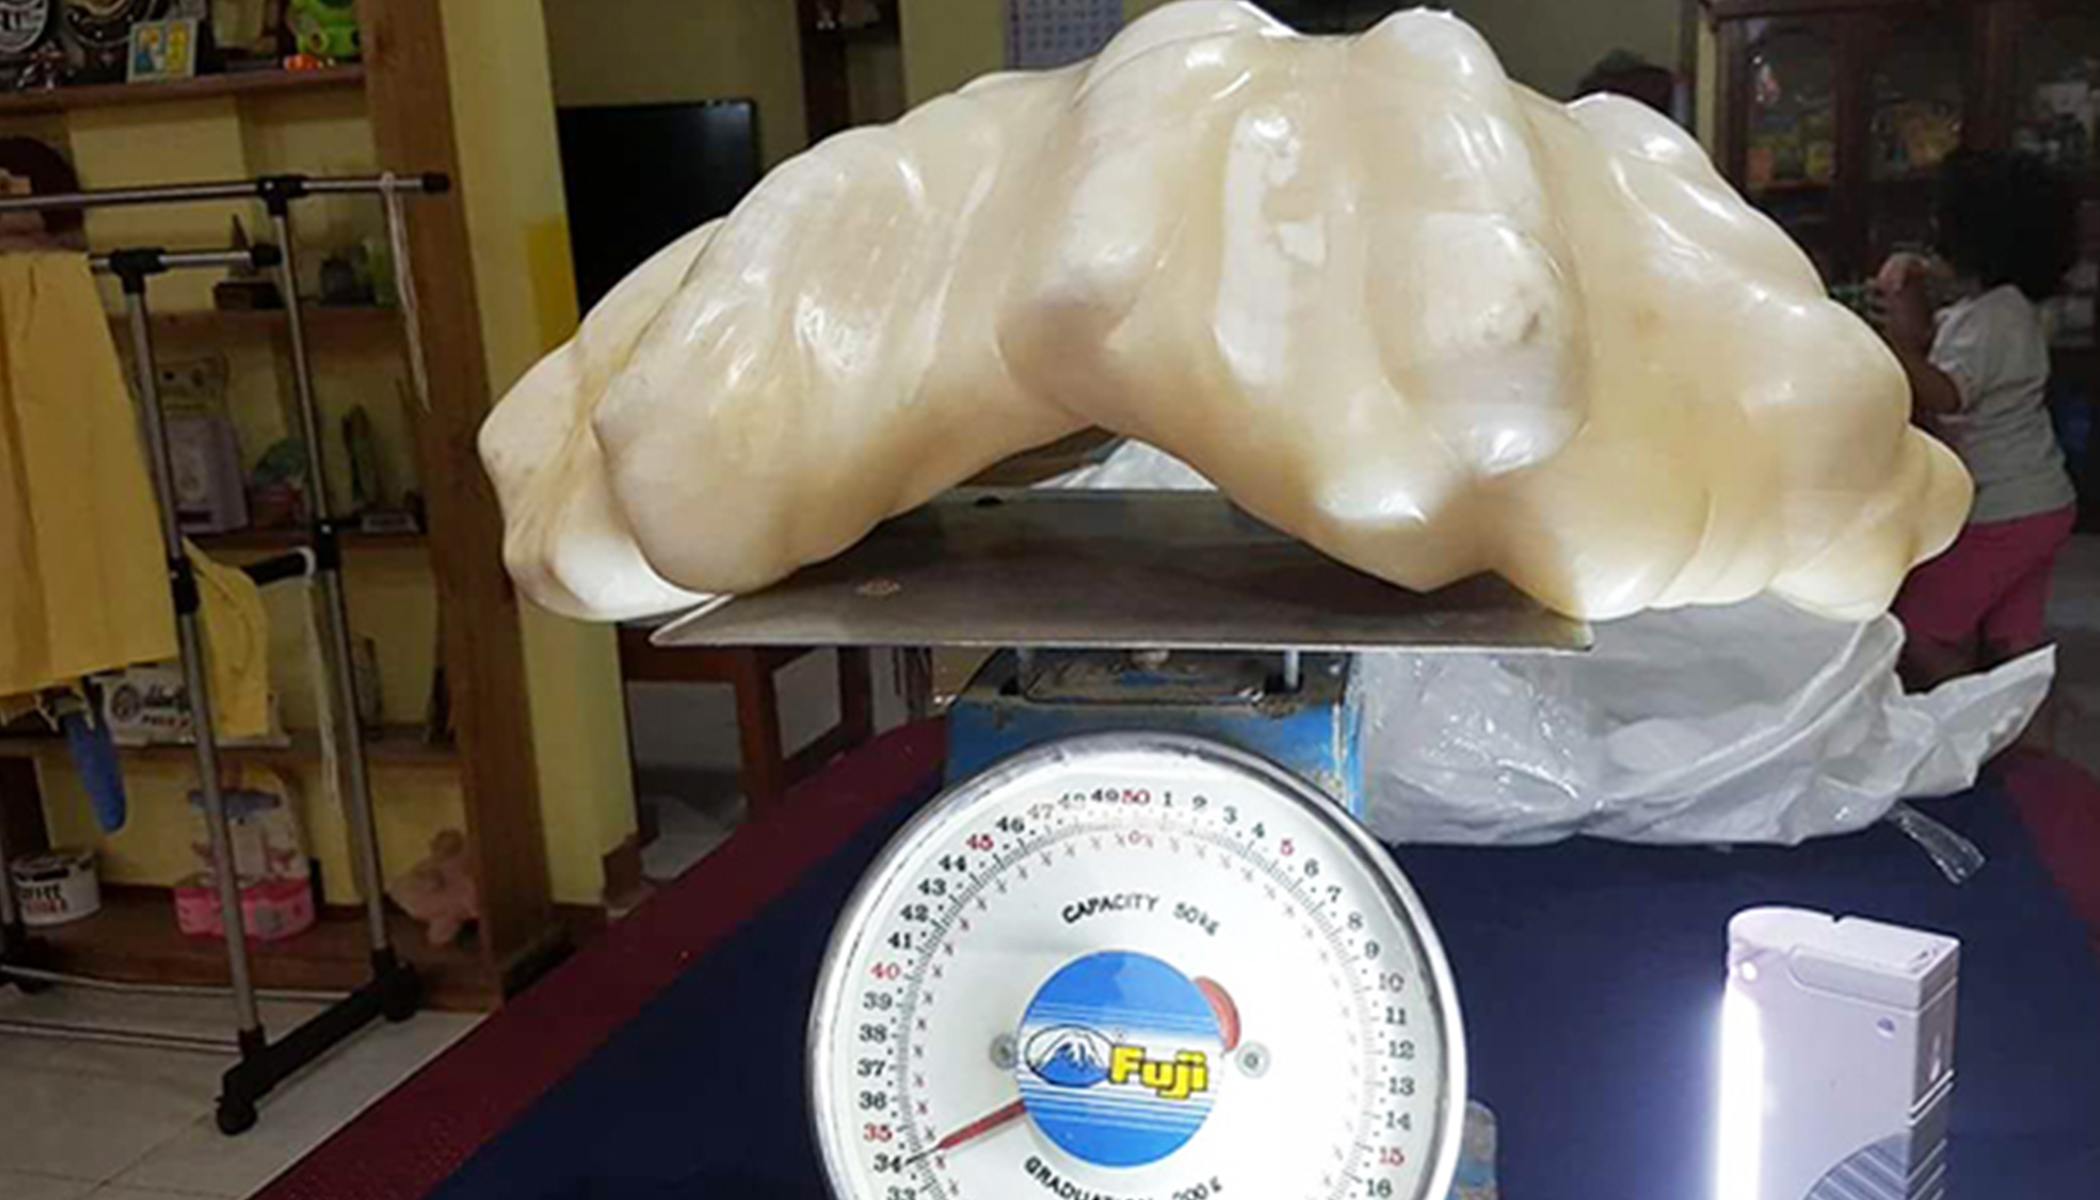 Fisherman Keeps 75lb Pearl Under Bed for Luck, 10 Years Later Stunned to Know Its Worth